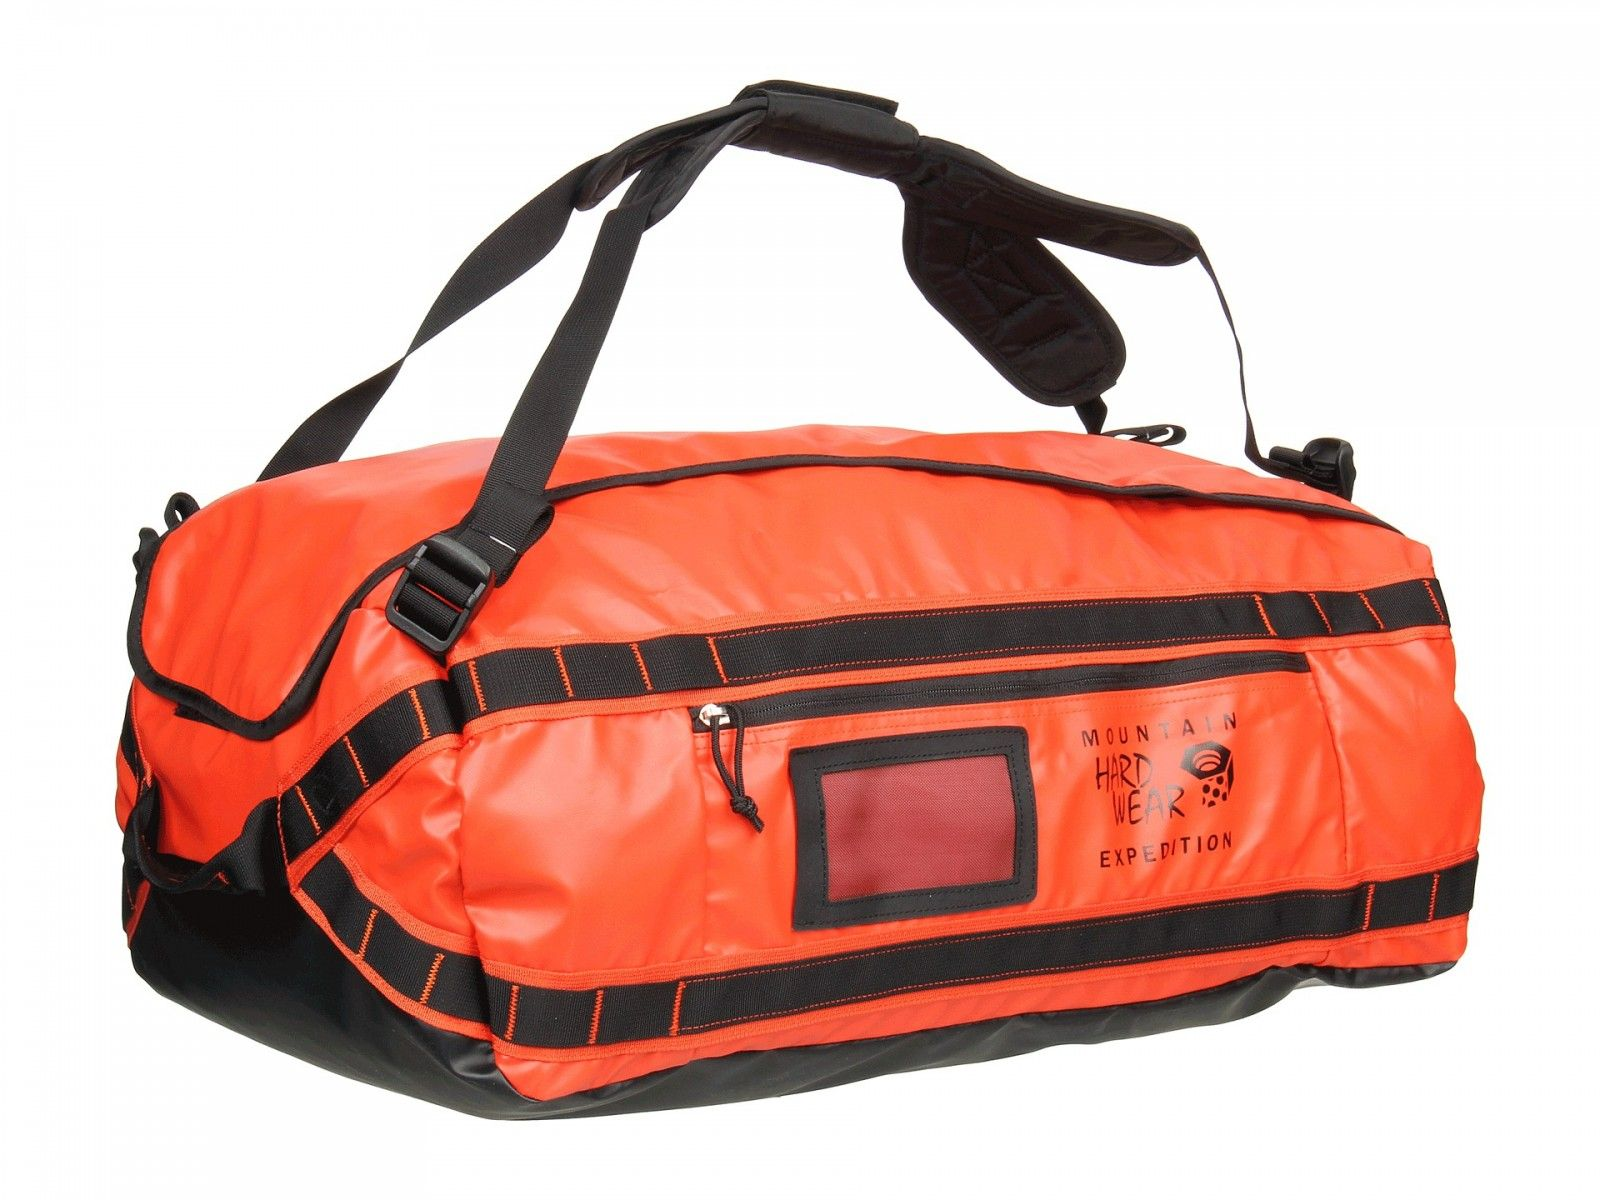 86ca60236 Image result for mountain hardwear expedition duffel | Expedition ...